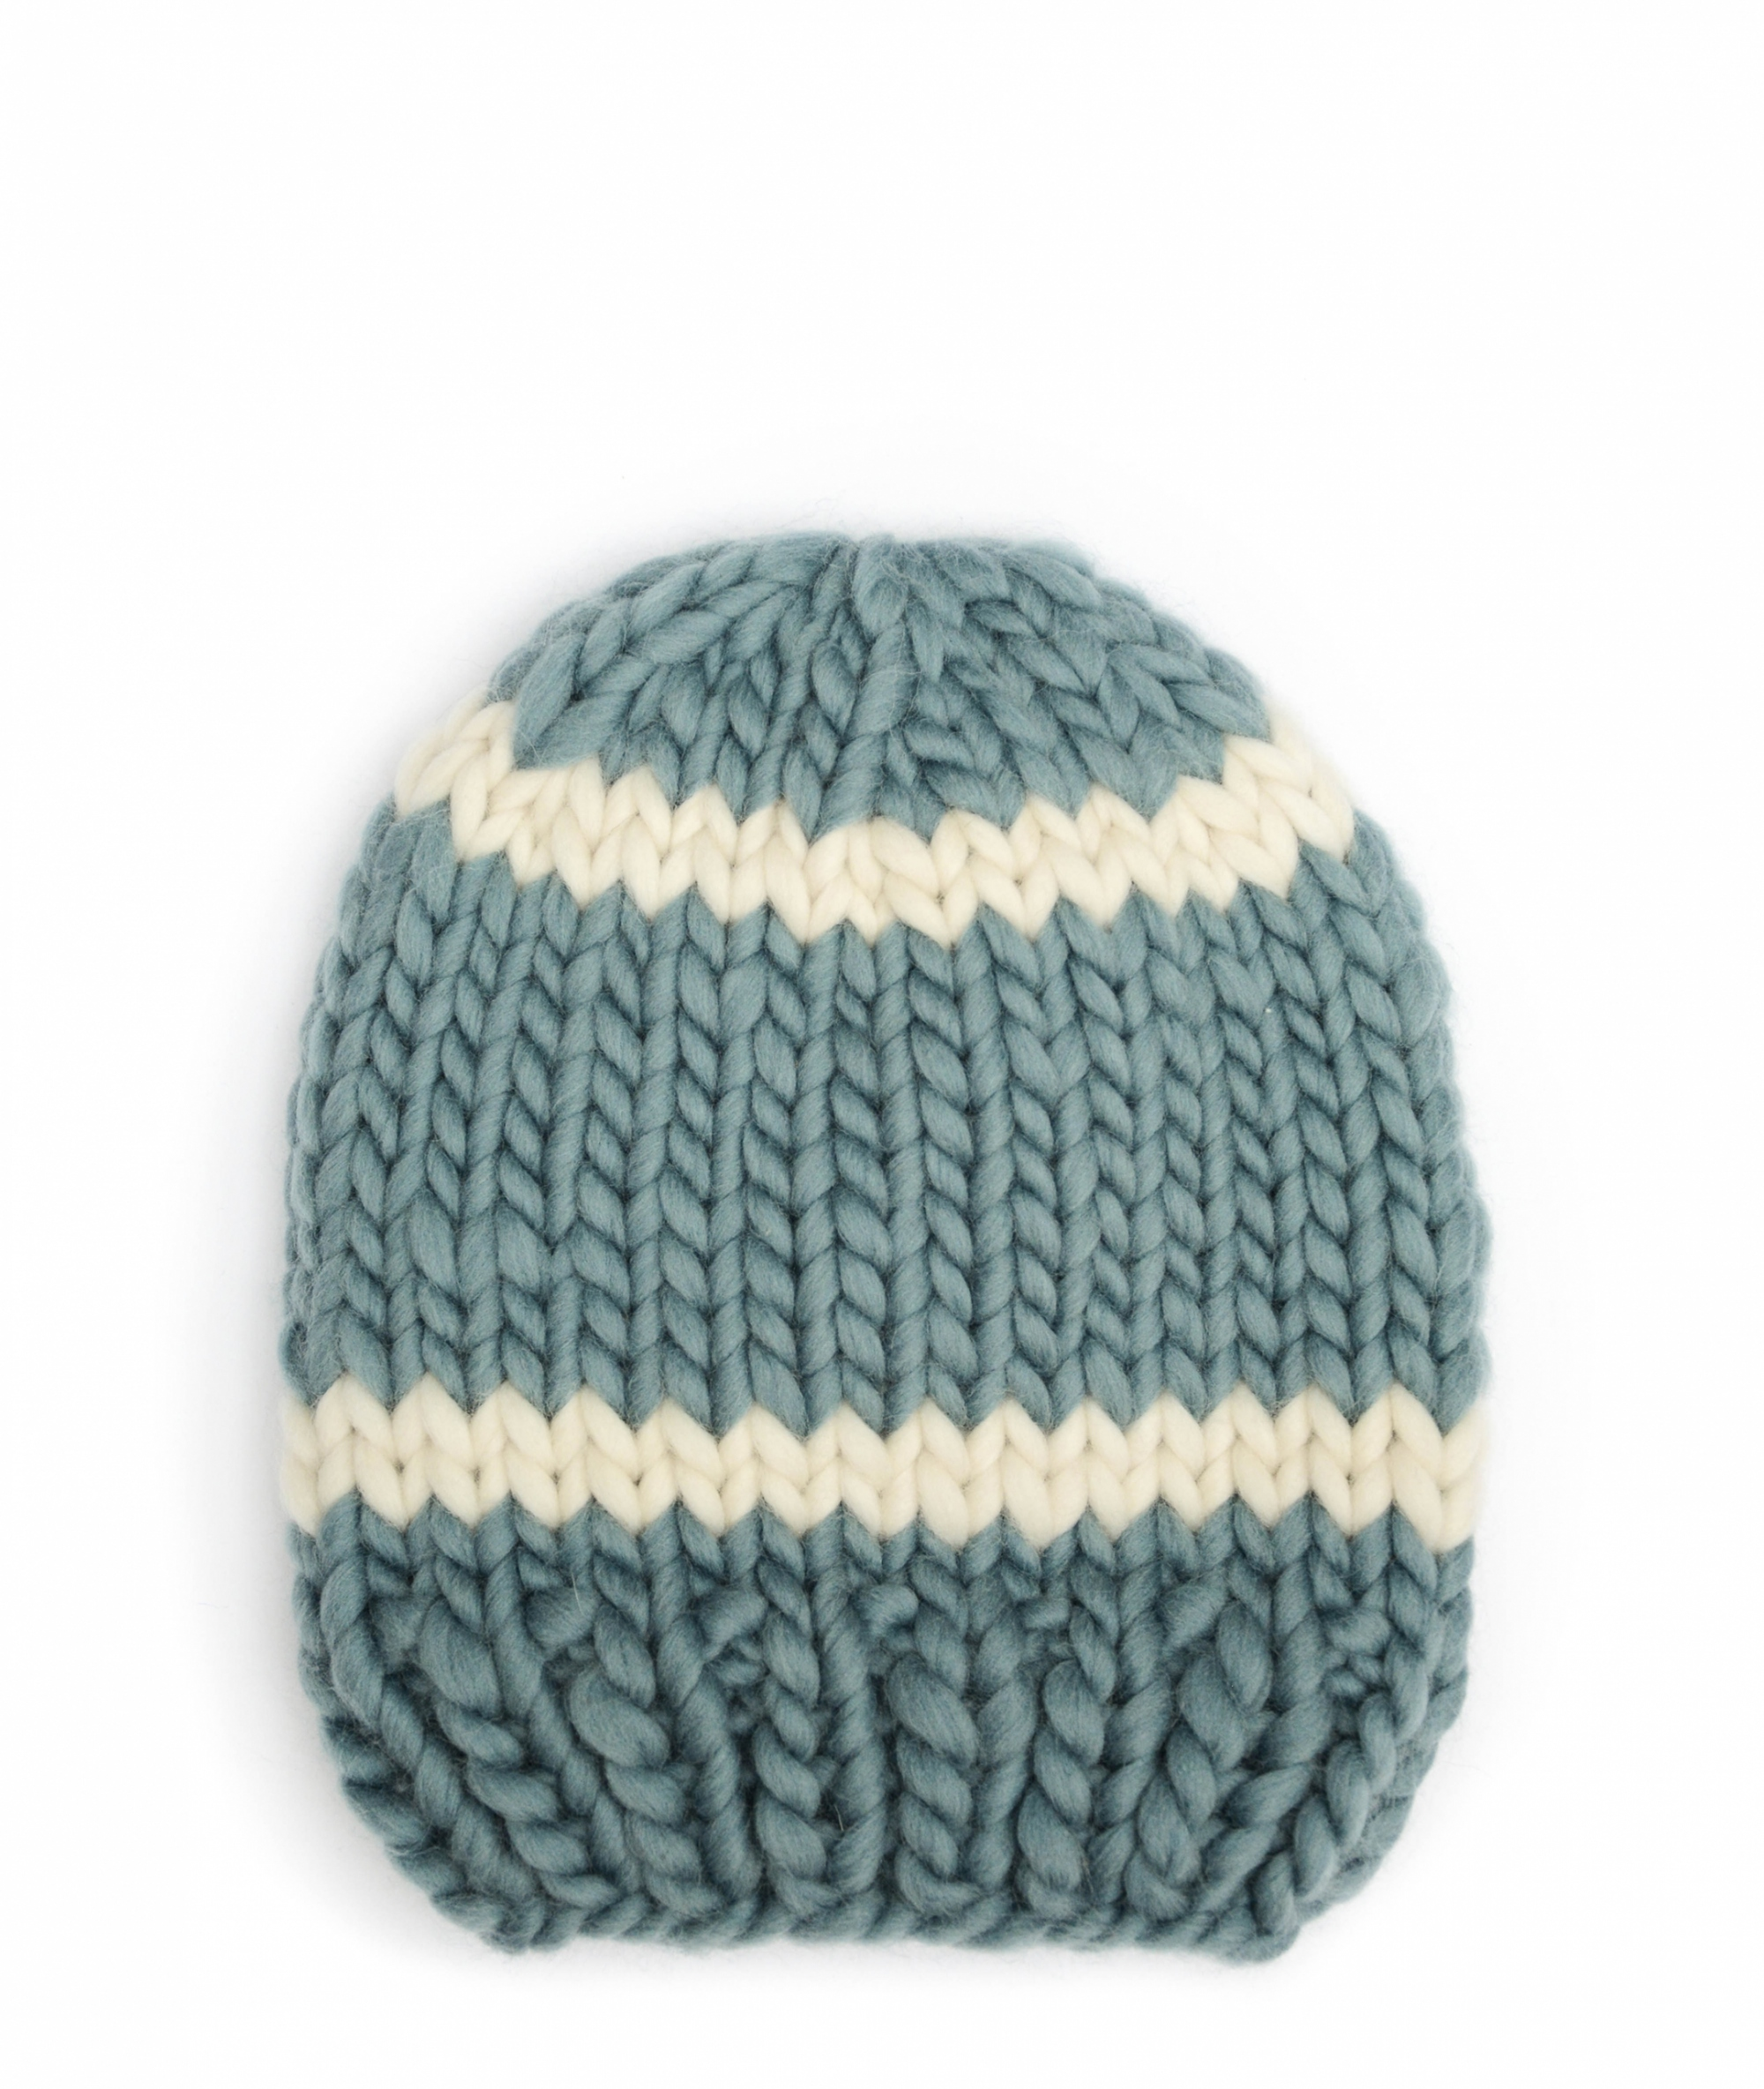 Handmade wool hats - Stone and Ivory striped beanie. Click to customise.